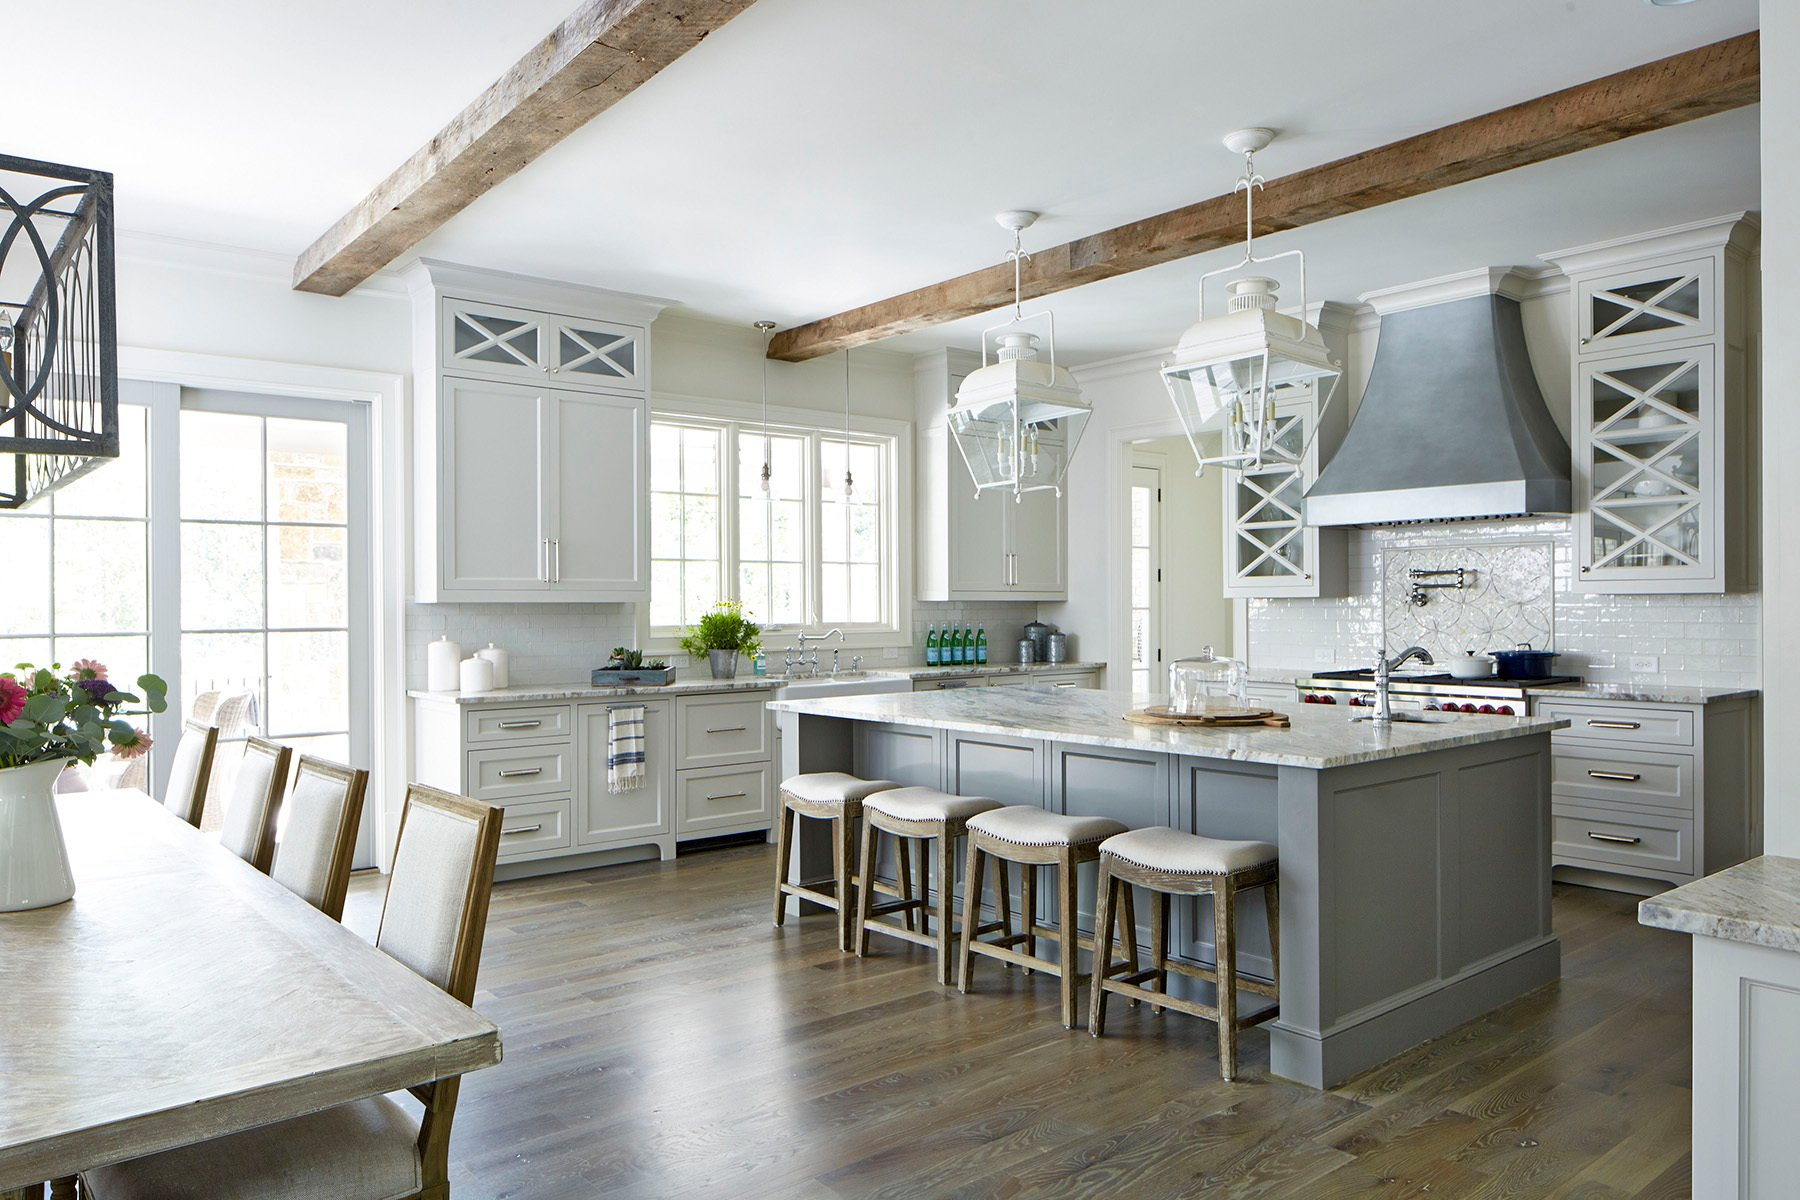 Traditional style kitchen with white cabinets and a gray center island.